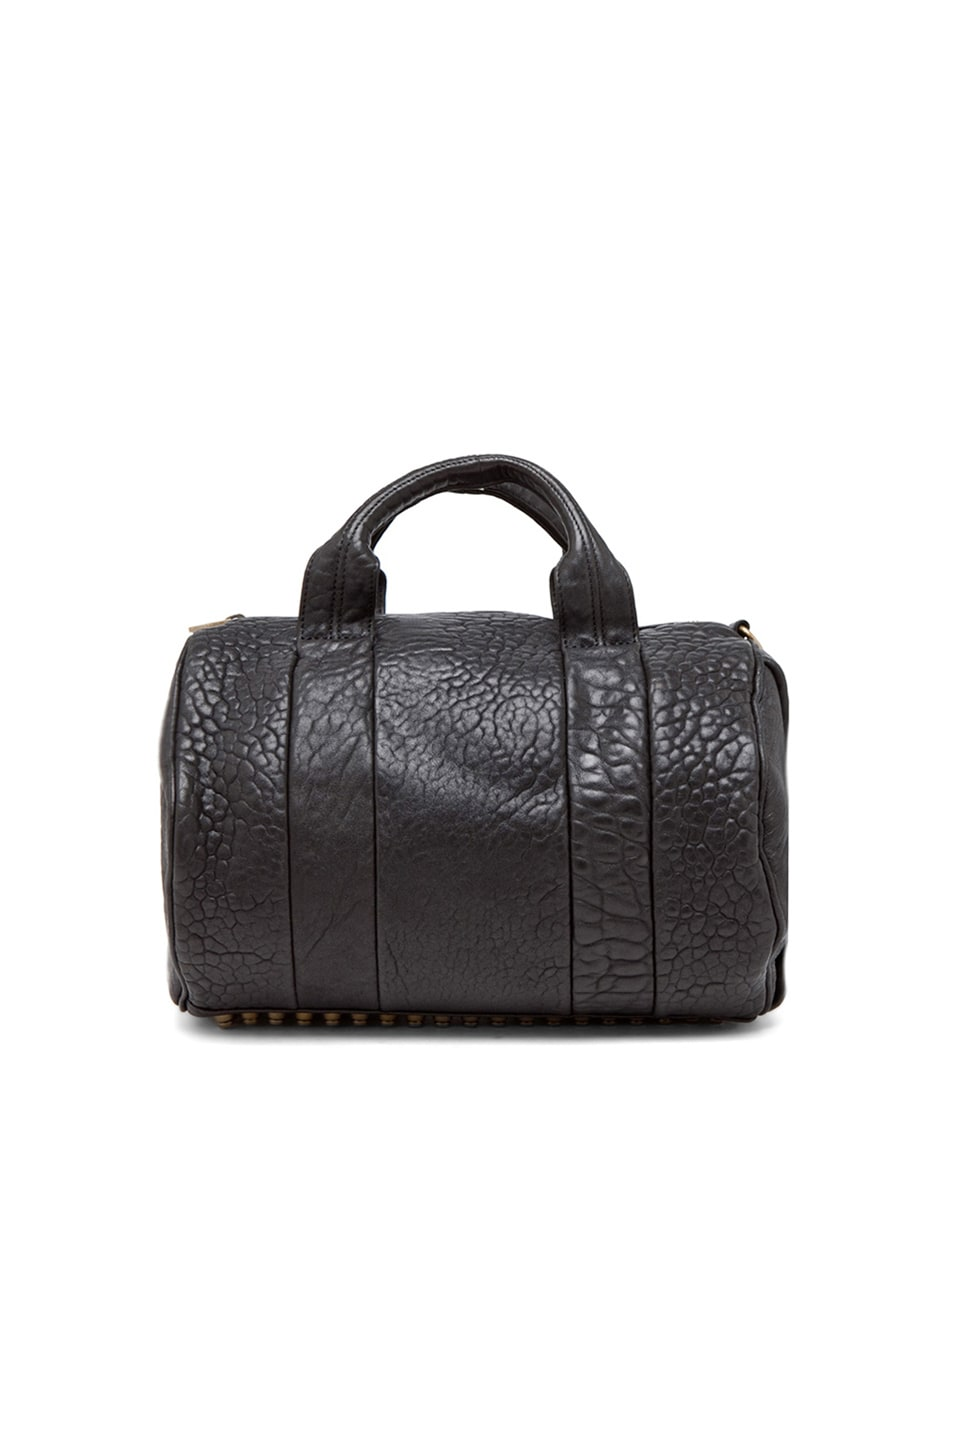 Image 3 of Alexander Wang Rocco Satchel with Gold Hardware in Black